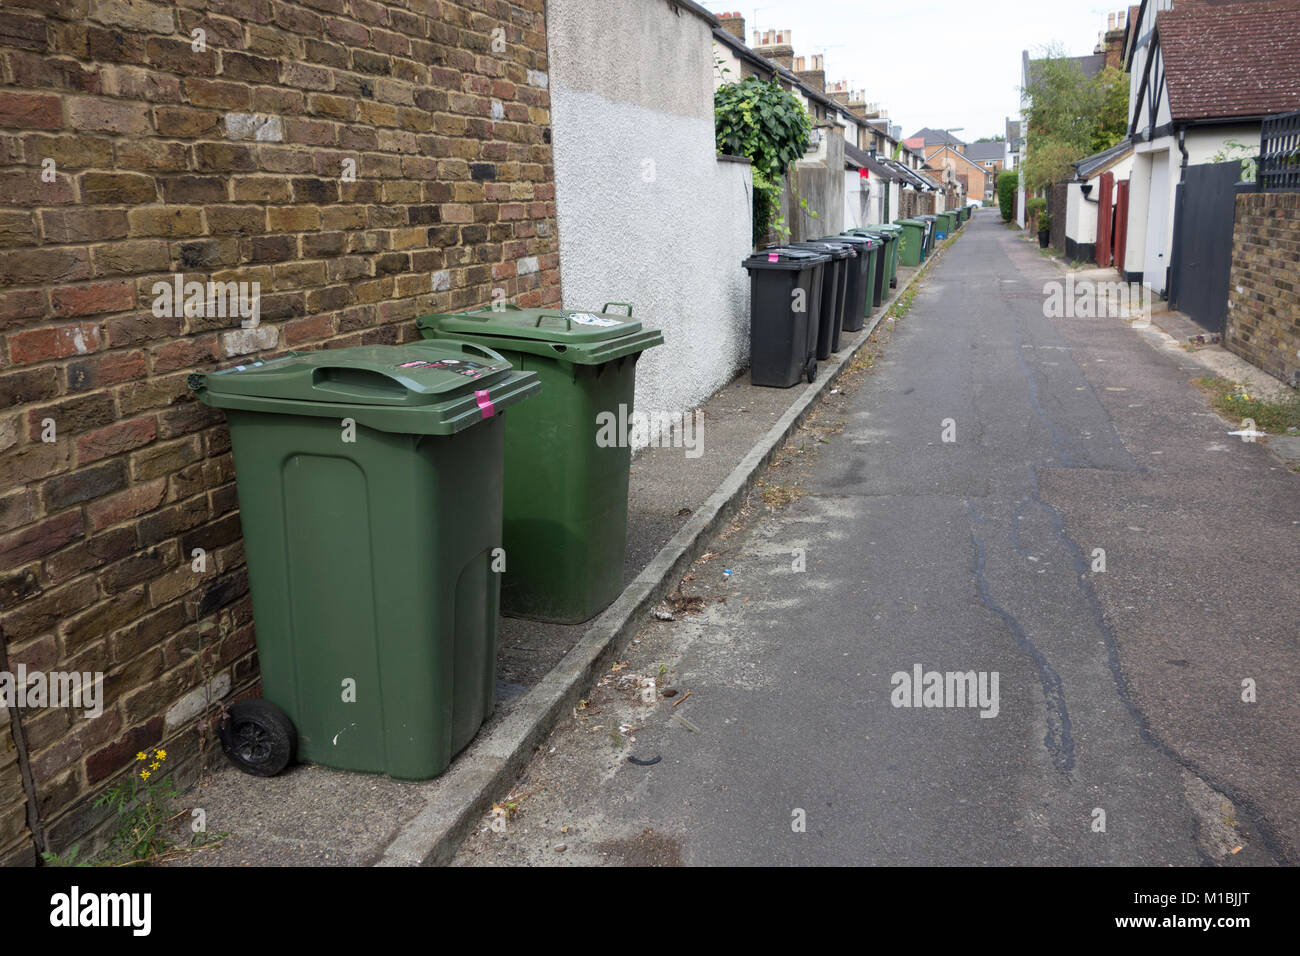 Domestic recycling bins and general household rubbish bins left out along street of residential area, UK - Stock Image